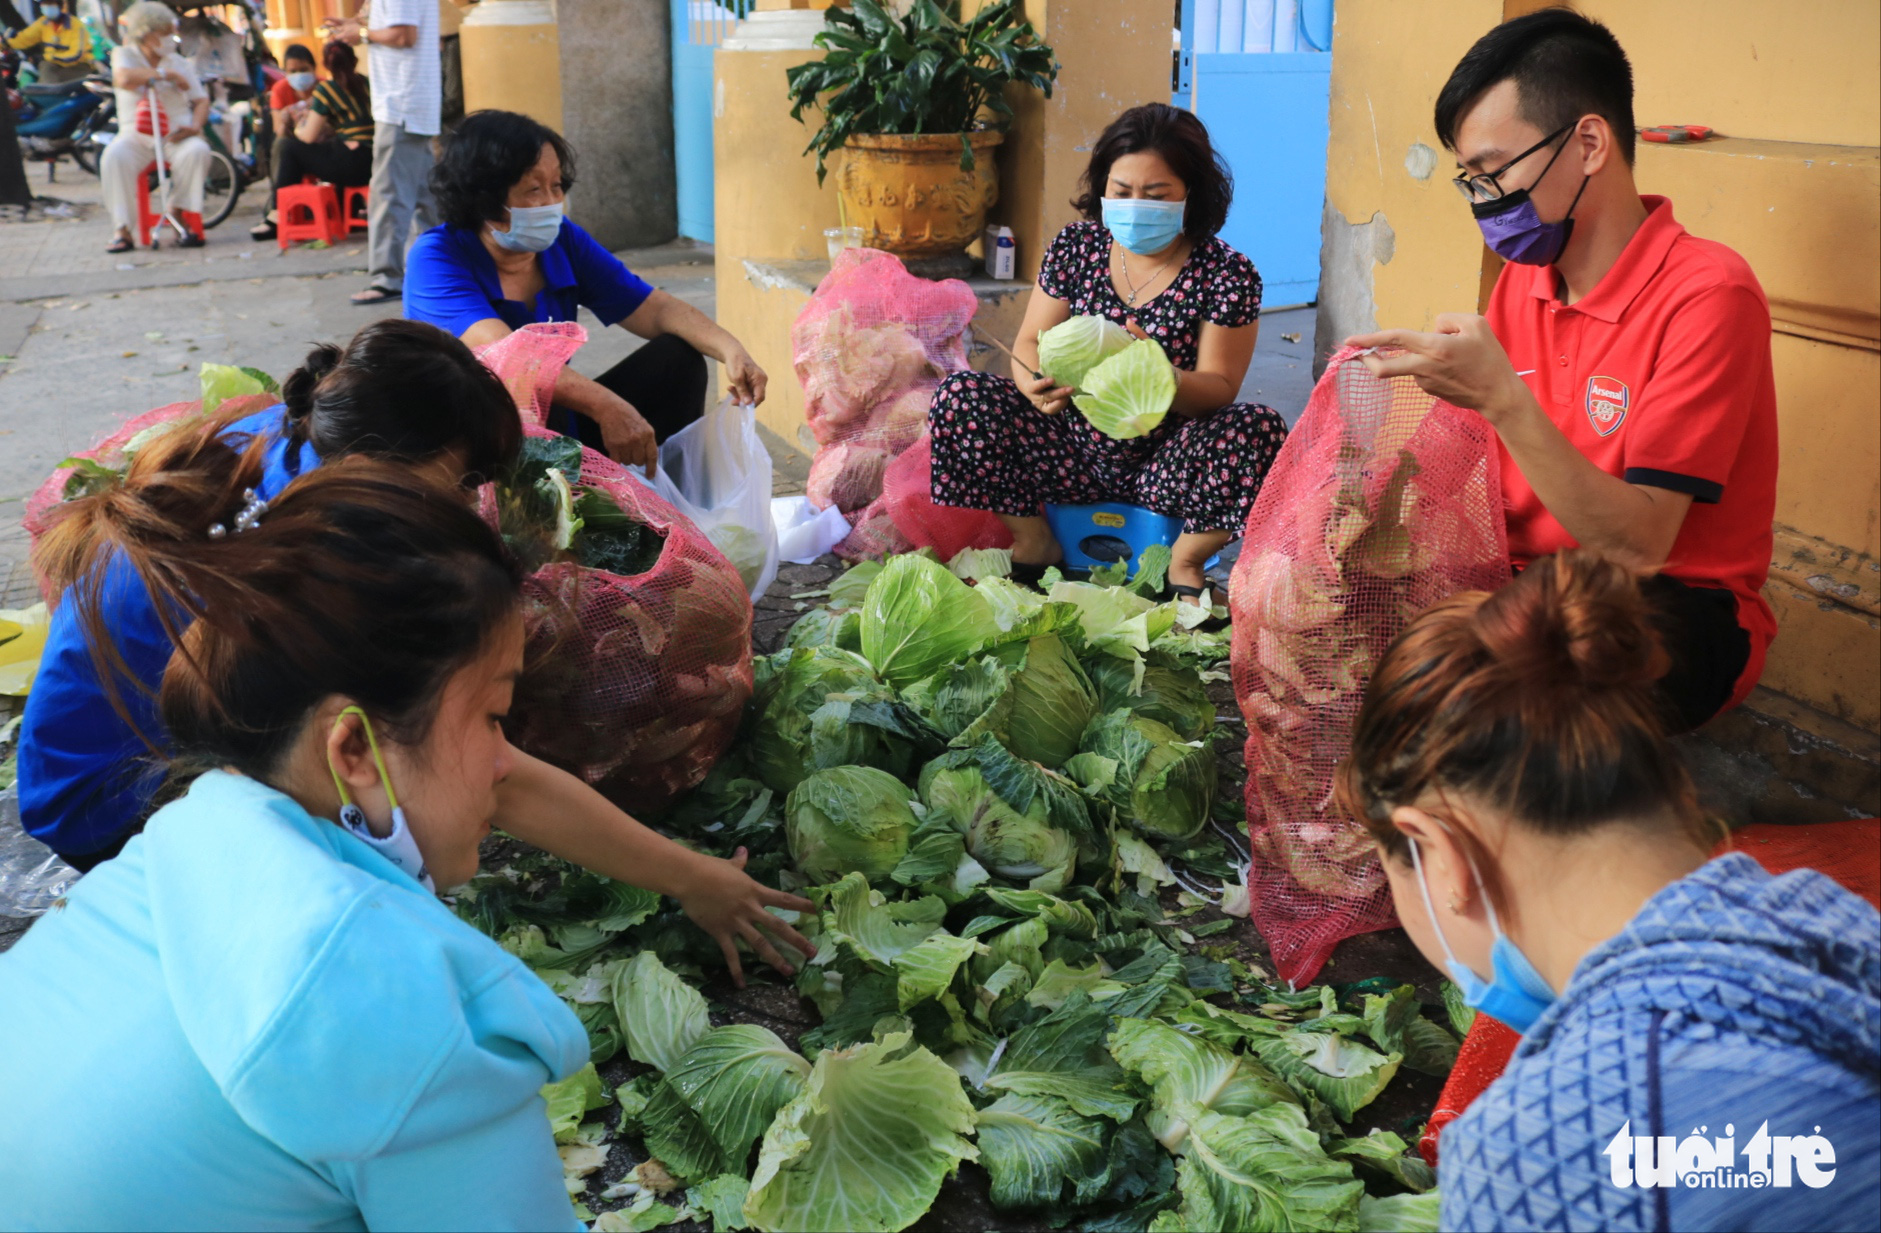 Enthusiastic people help at a makeshift stall of cabbage rescued from northern Hai Duong Province in District 3, Ho Chi Minh City, February 23, 2021. Photo: Nhat Thinh / Tuoi Tre